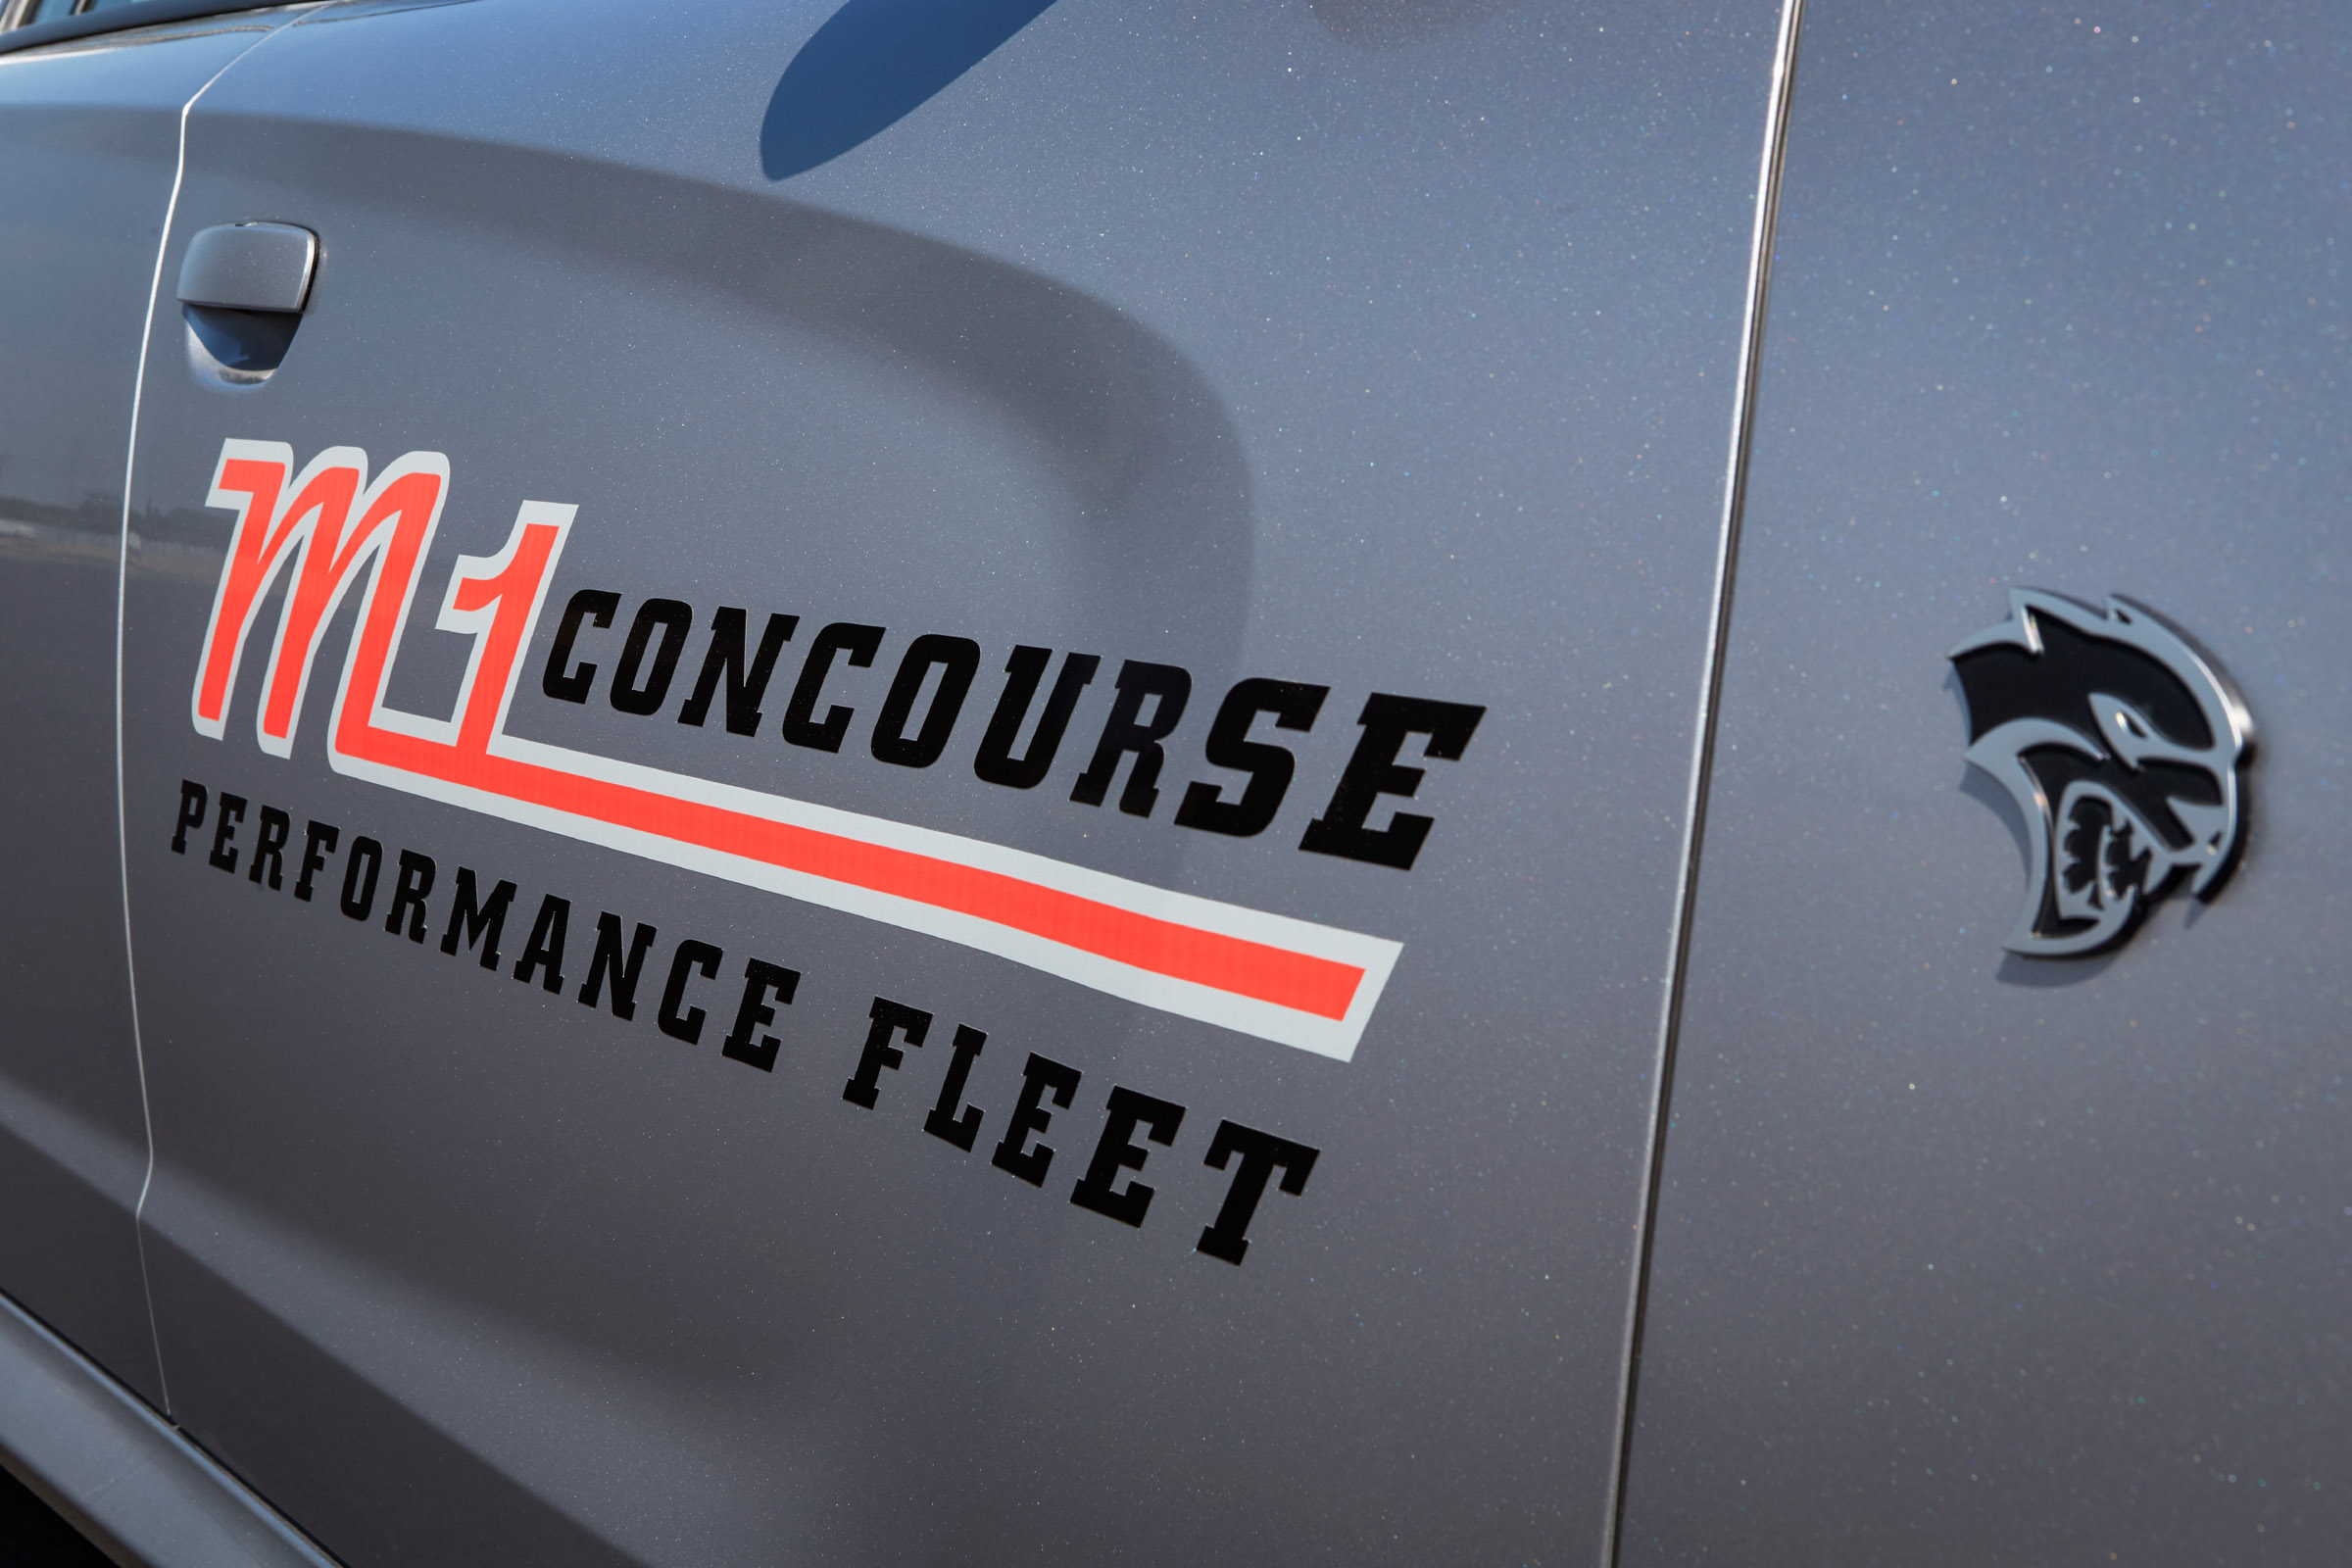 Dodge is sponsoring the new M1 Concourse